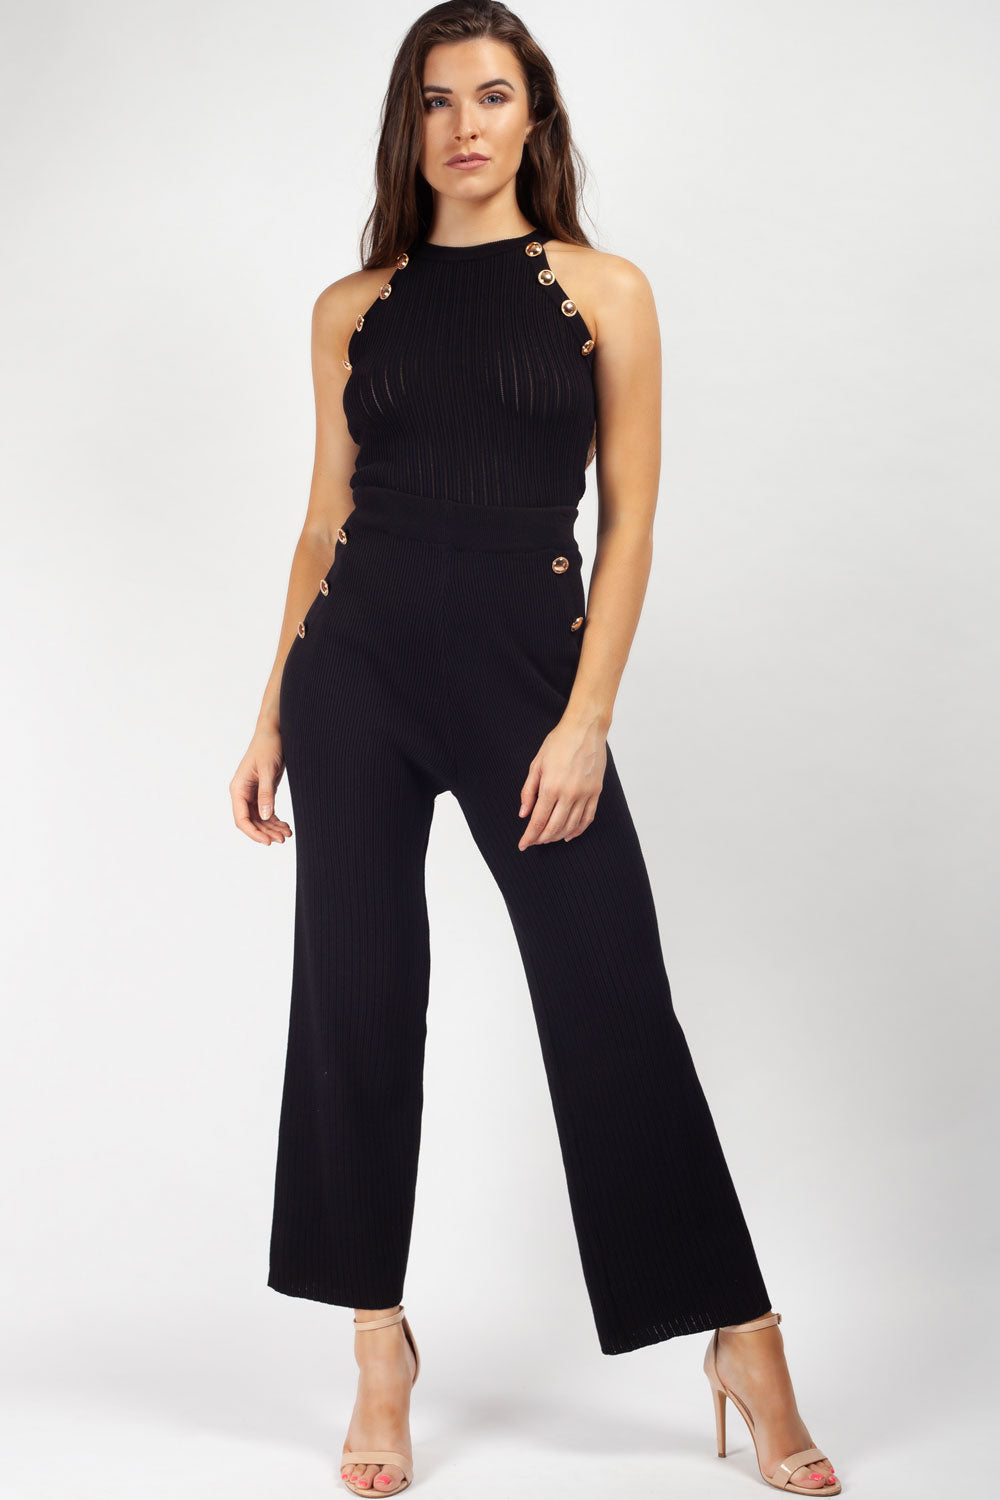 black ribbed knit loungewear